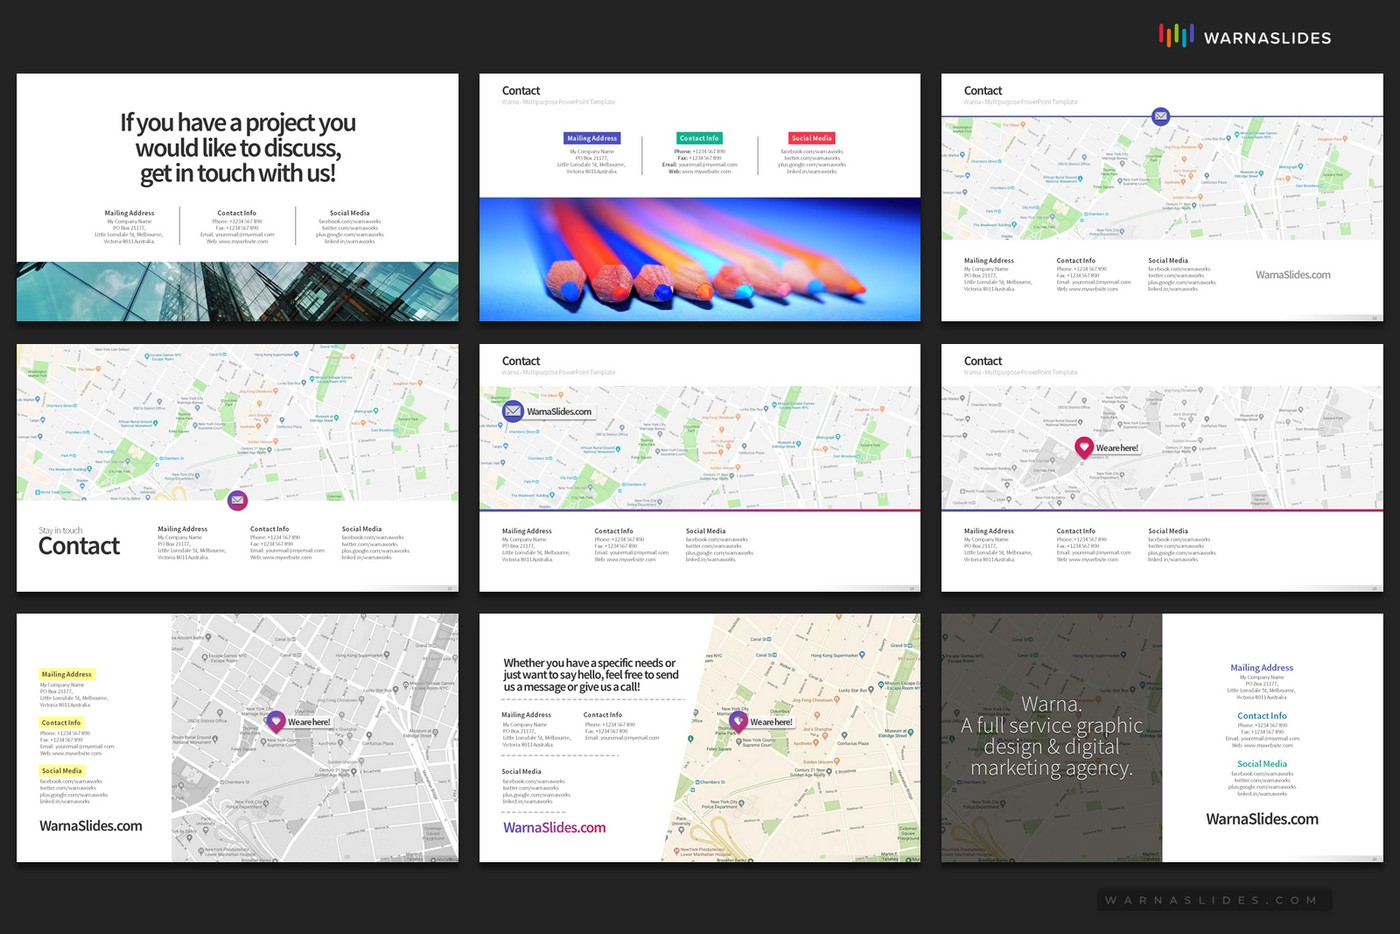 Contact-Information-Maps-PowerPoint-Template-for-Business-Pitch-Deck-Professional-Creative-PowerPoint-Icons-008